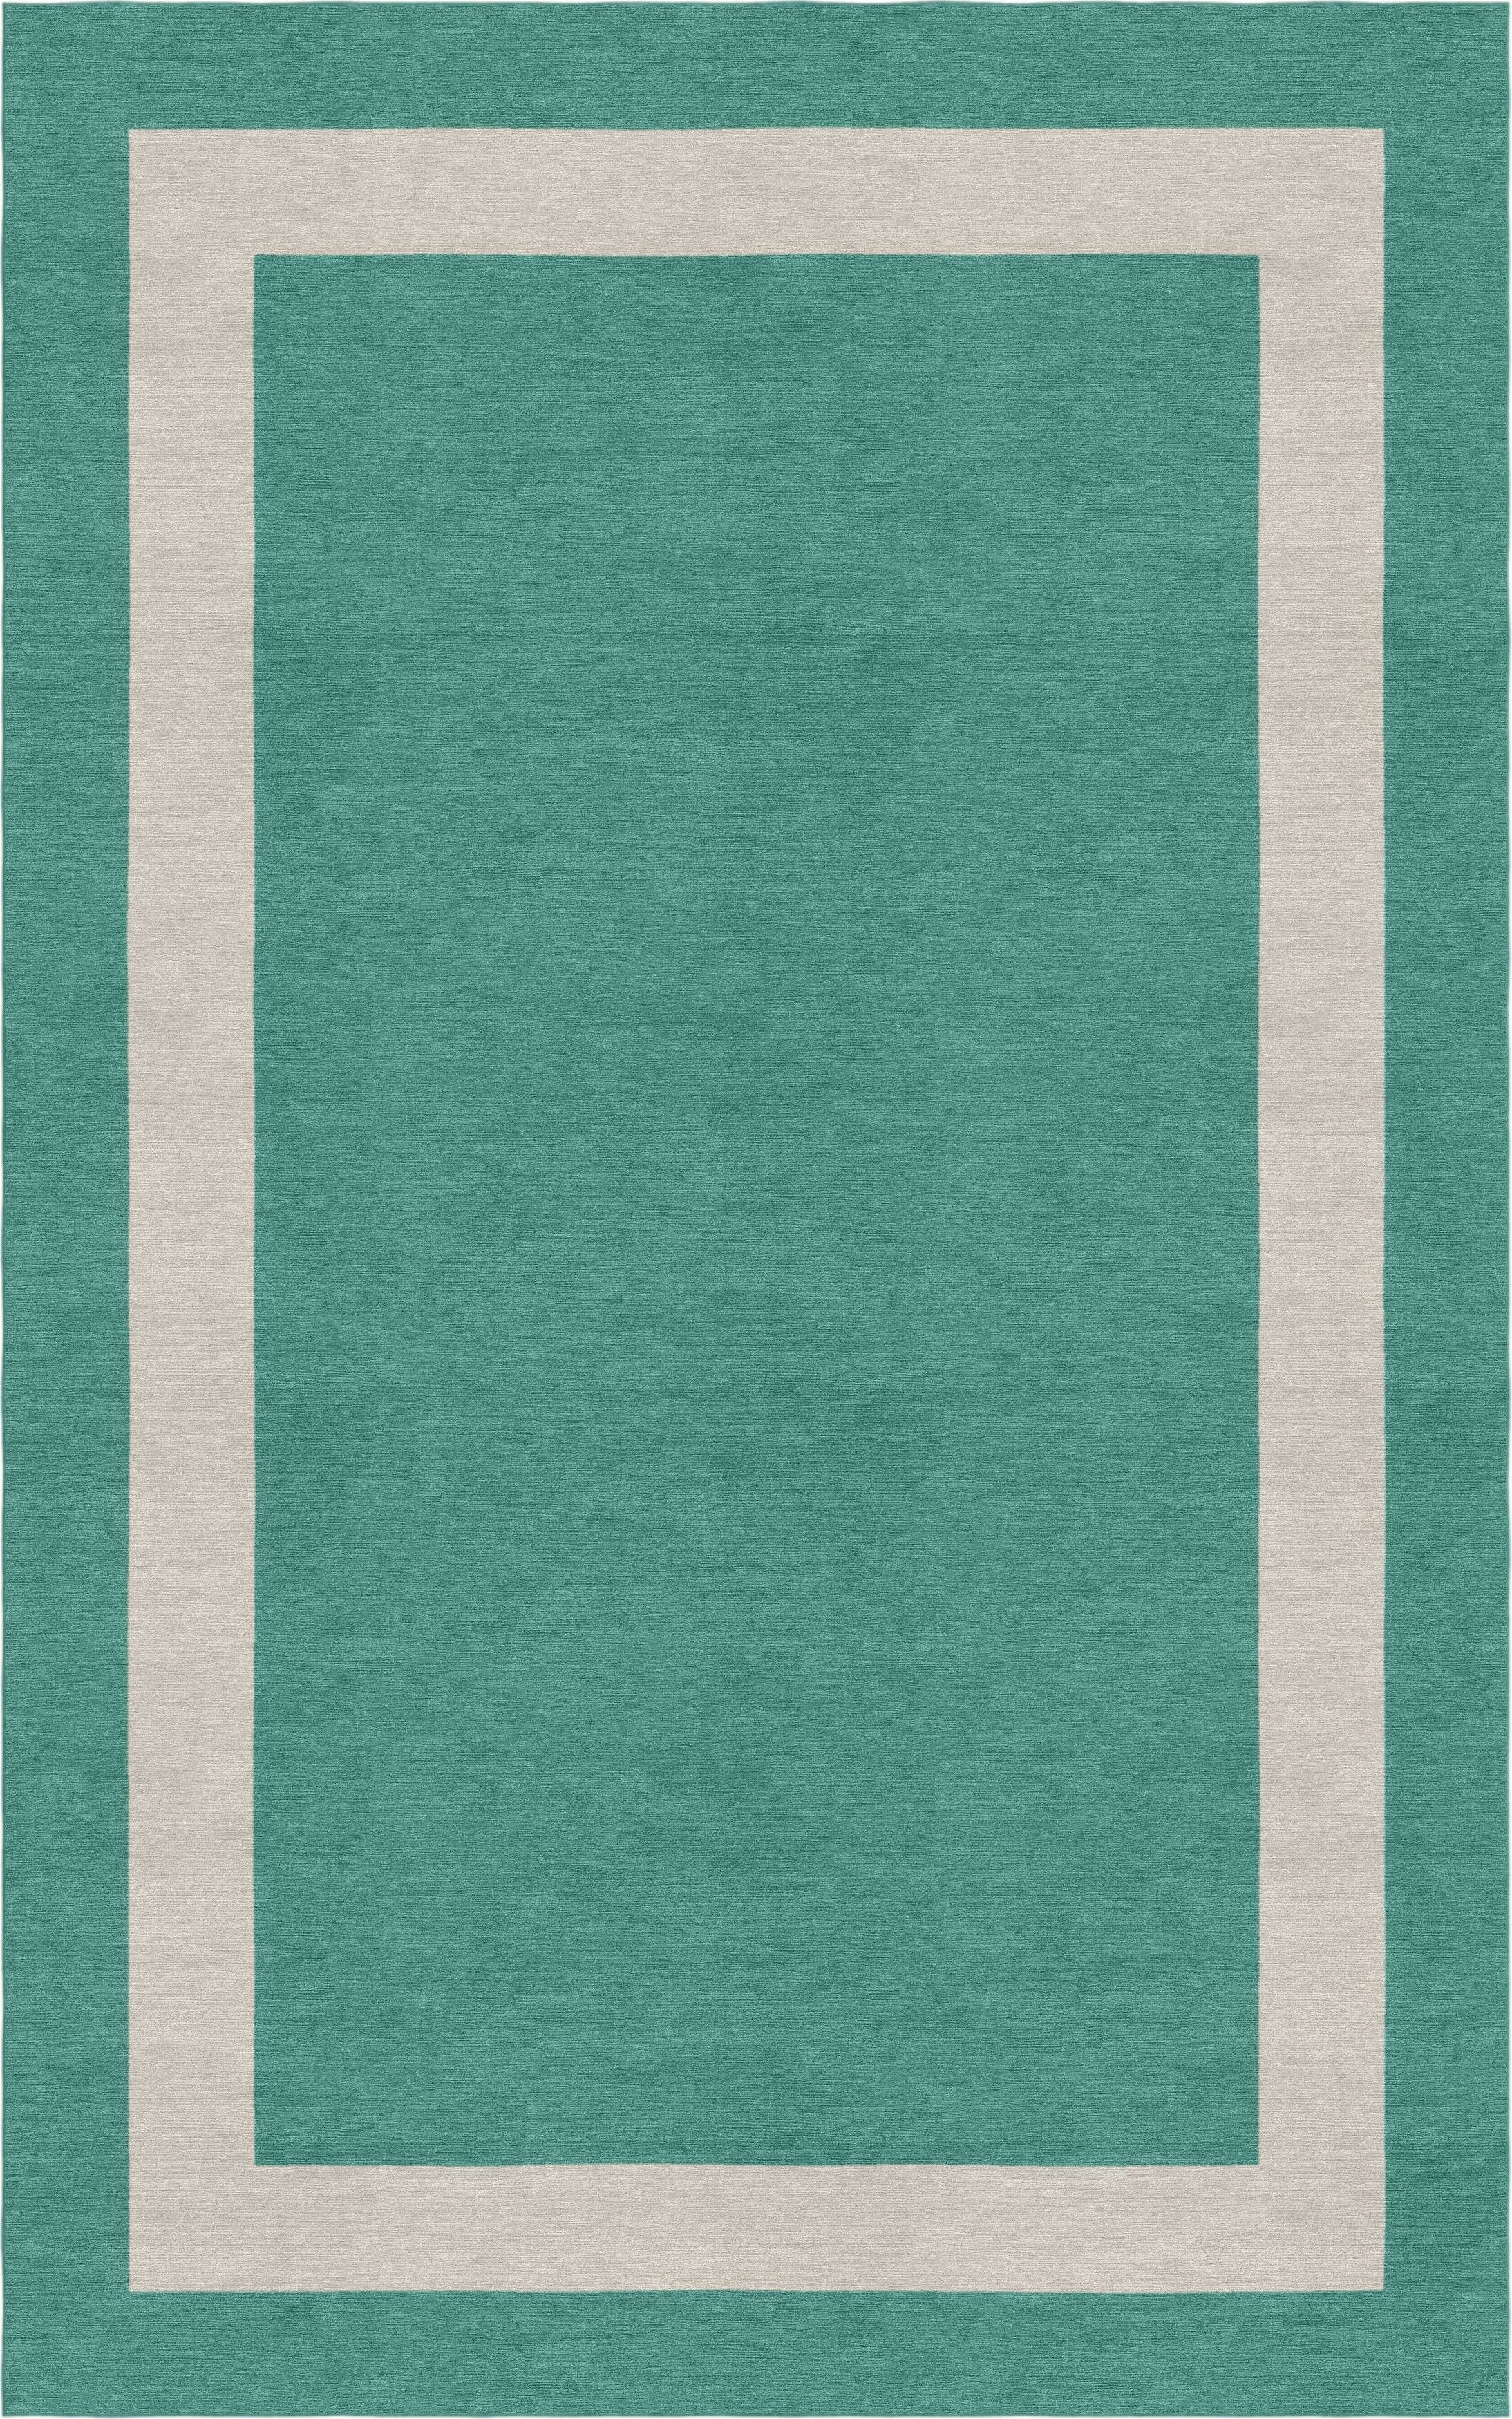 Misdalski Border Hand-Tufted Wool Teal/Silver Area Rug Rug Size: Rectangle 5' x 8'